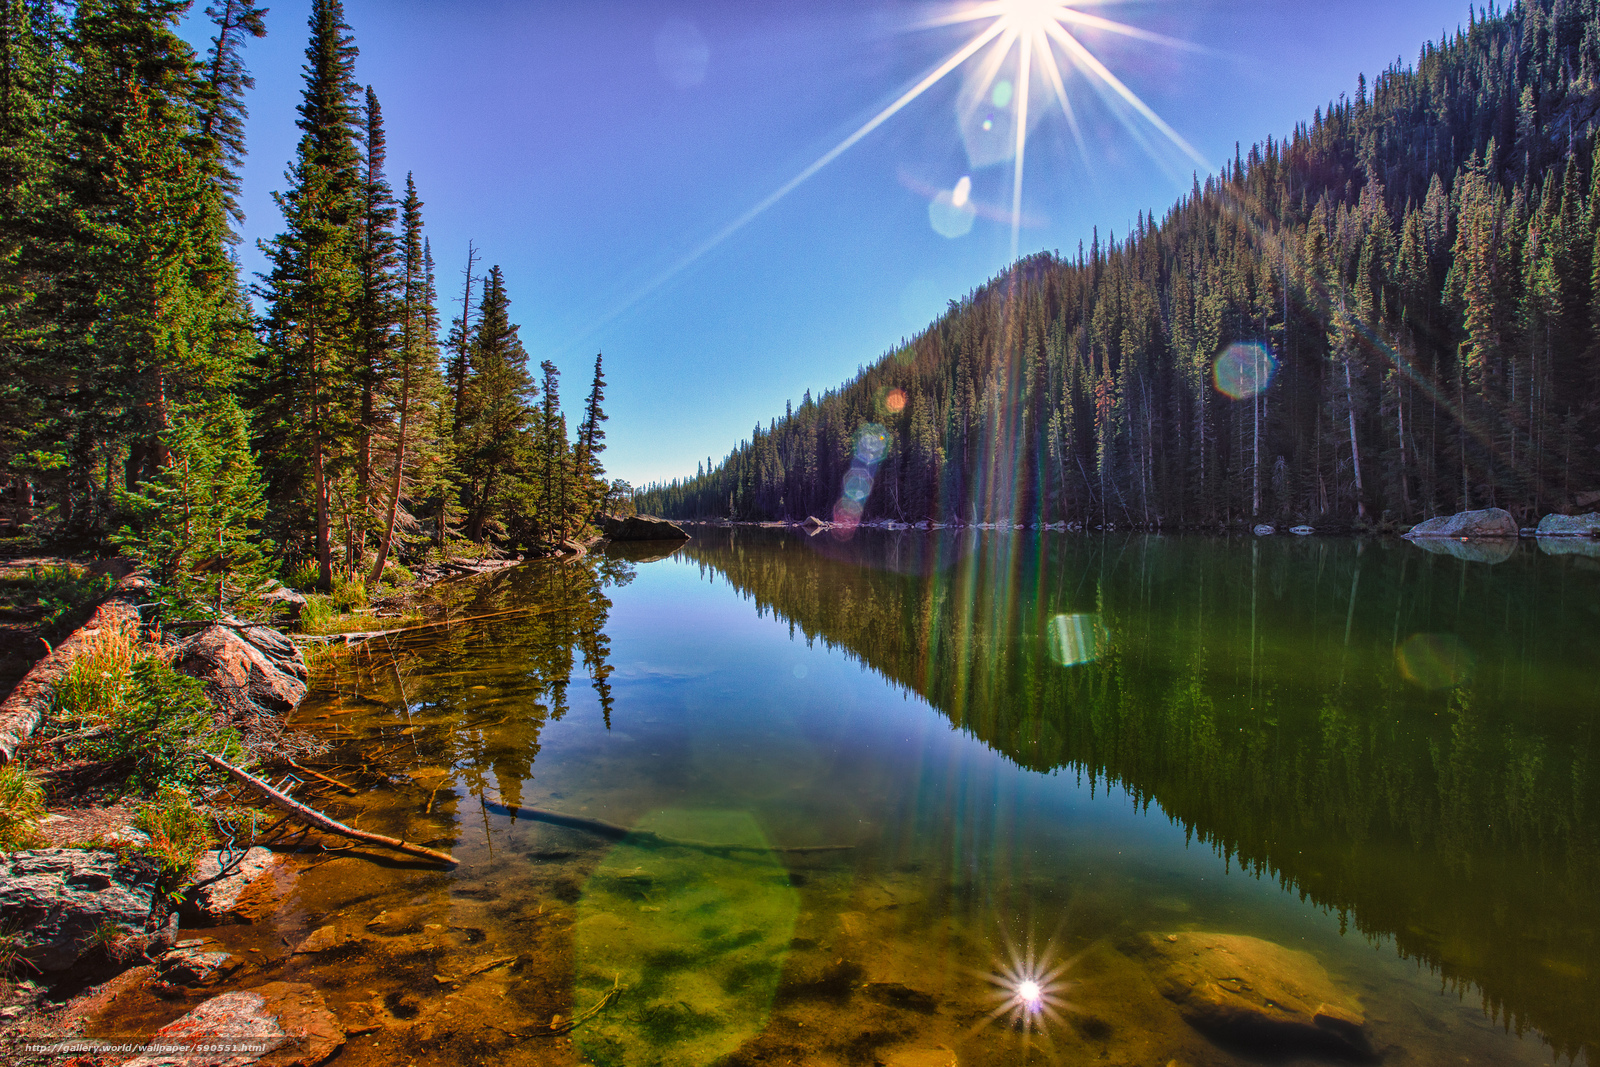 Download wallpaper Dream Lake Rocky Mountain National Park lake 1600x1067